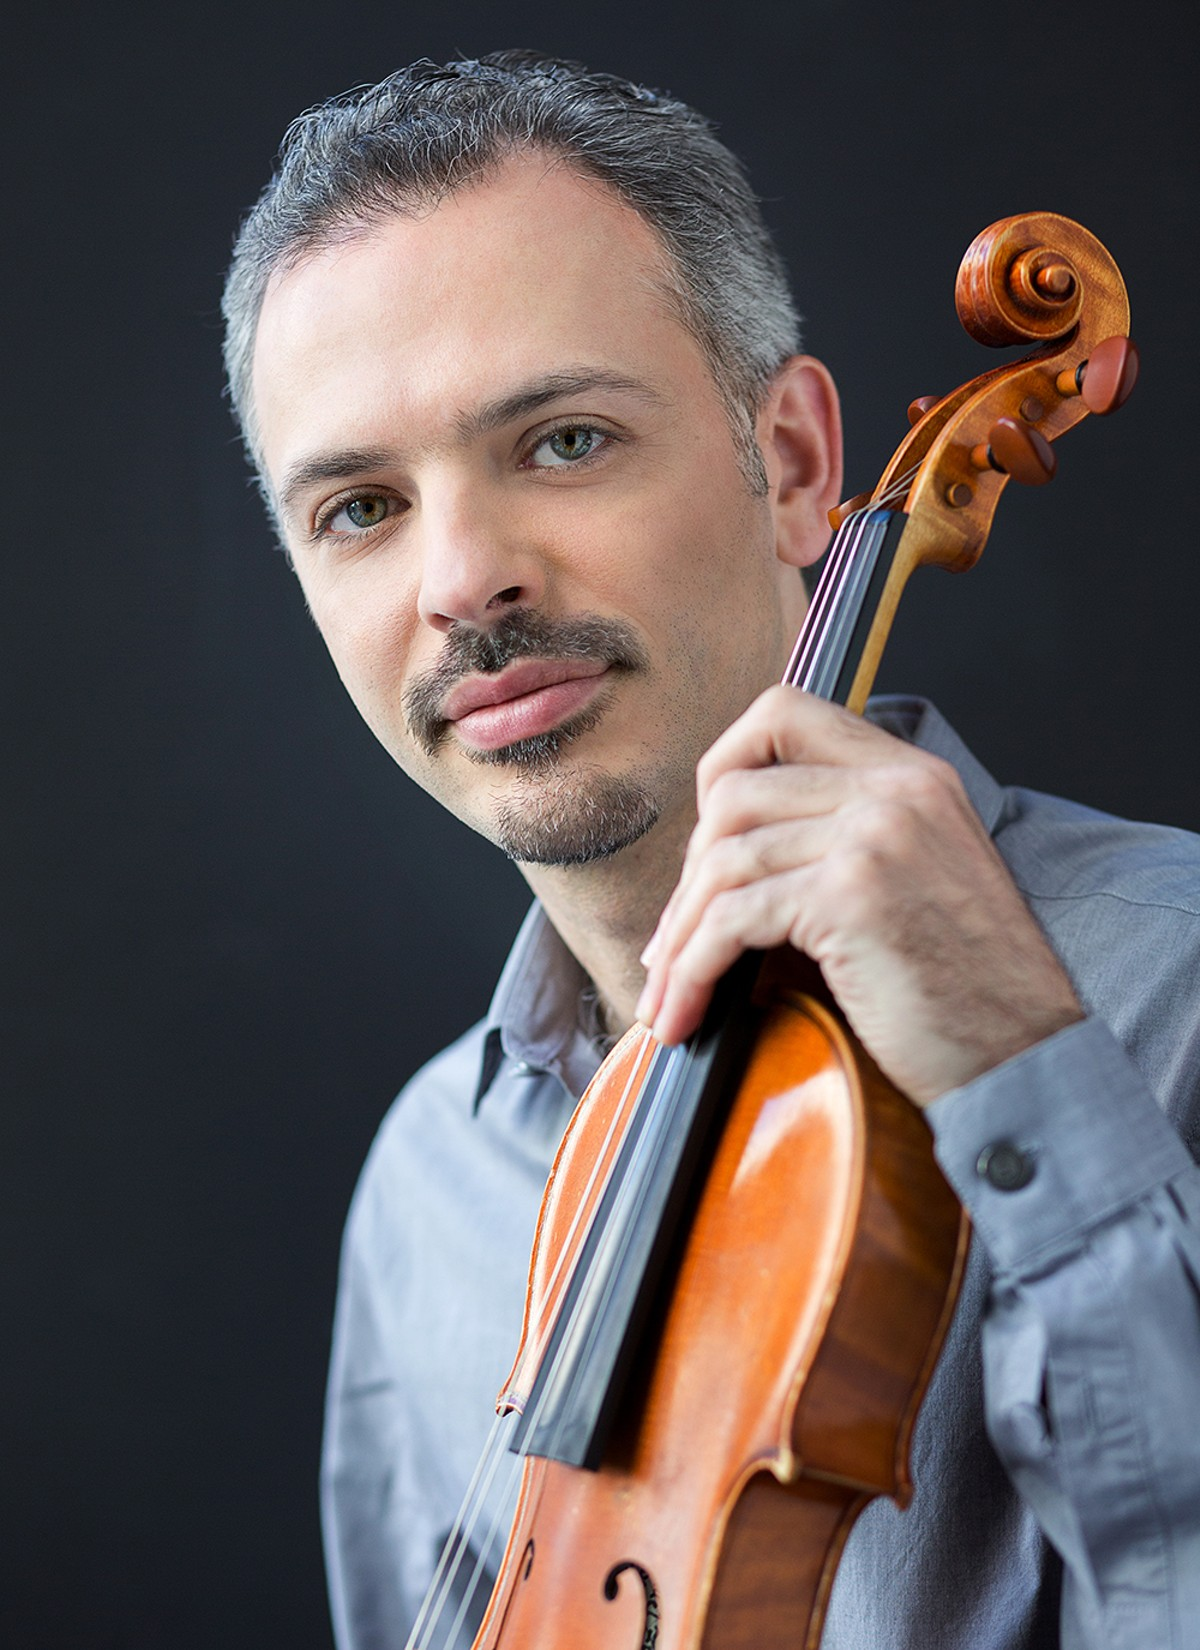 Violinist and composer Colin Jacobsen